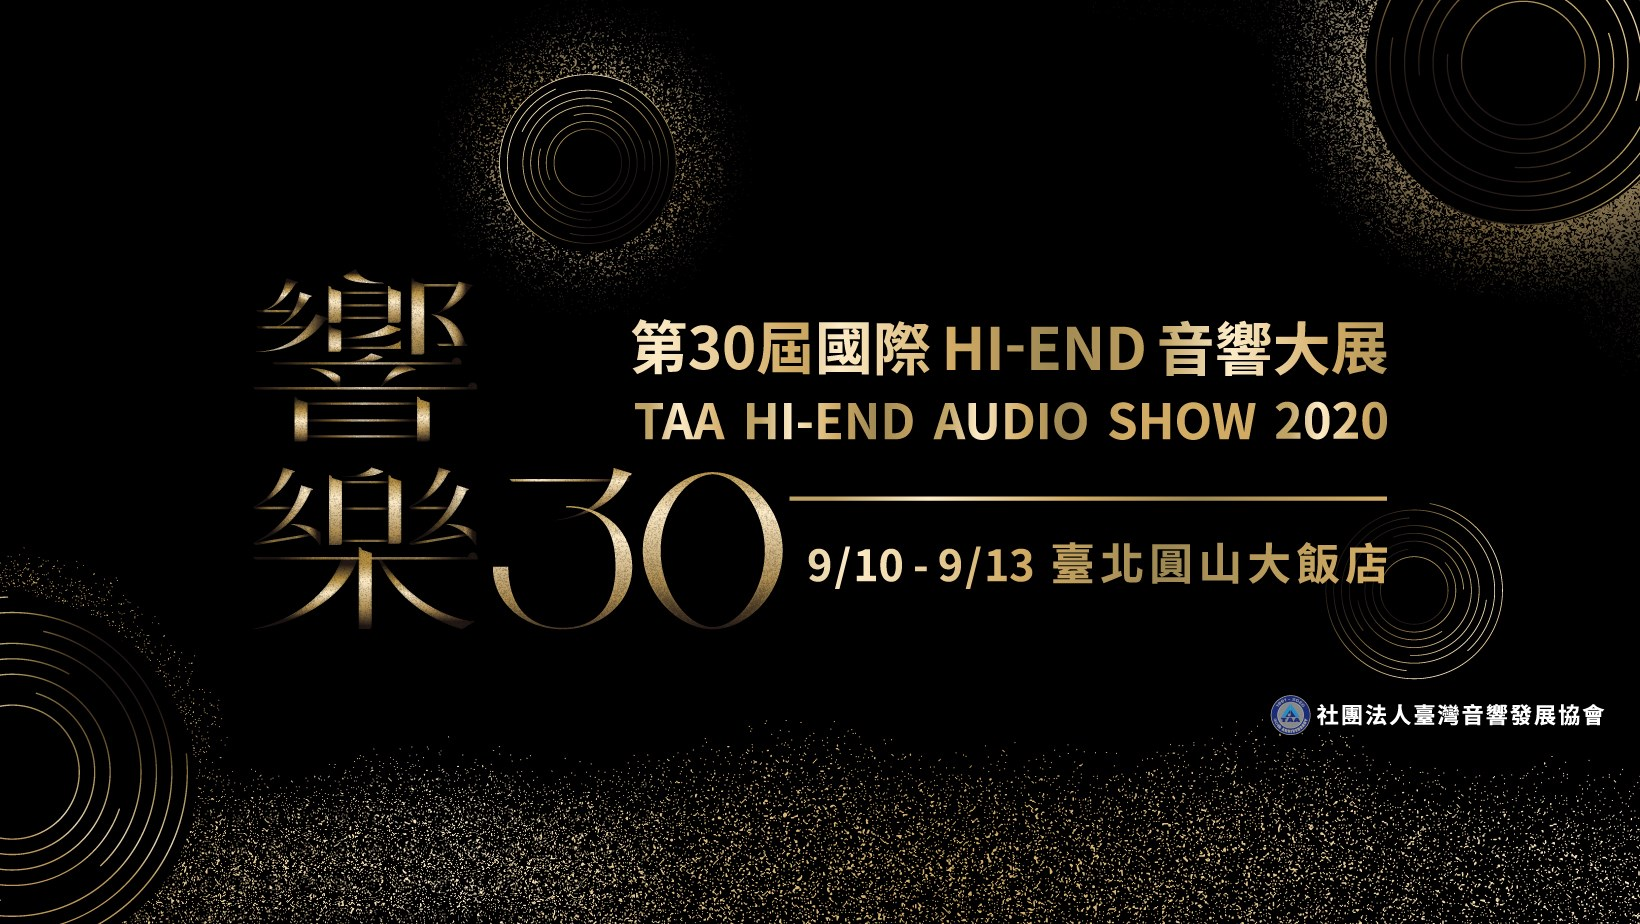 The TAA Hi-End Audio Show 2020 in Taiwan is likely the first hi-fi show to be organised since Covid-19 forced the shutdown of show events the world over.